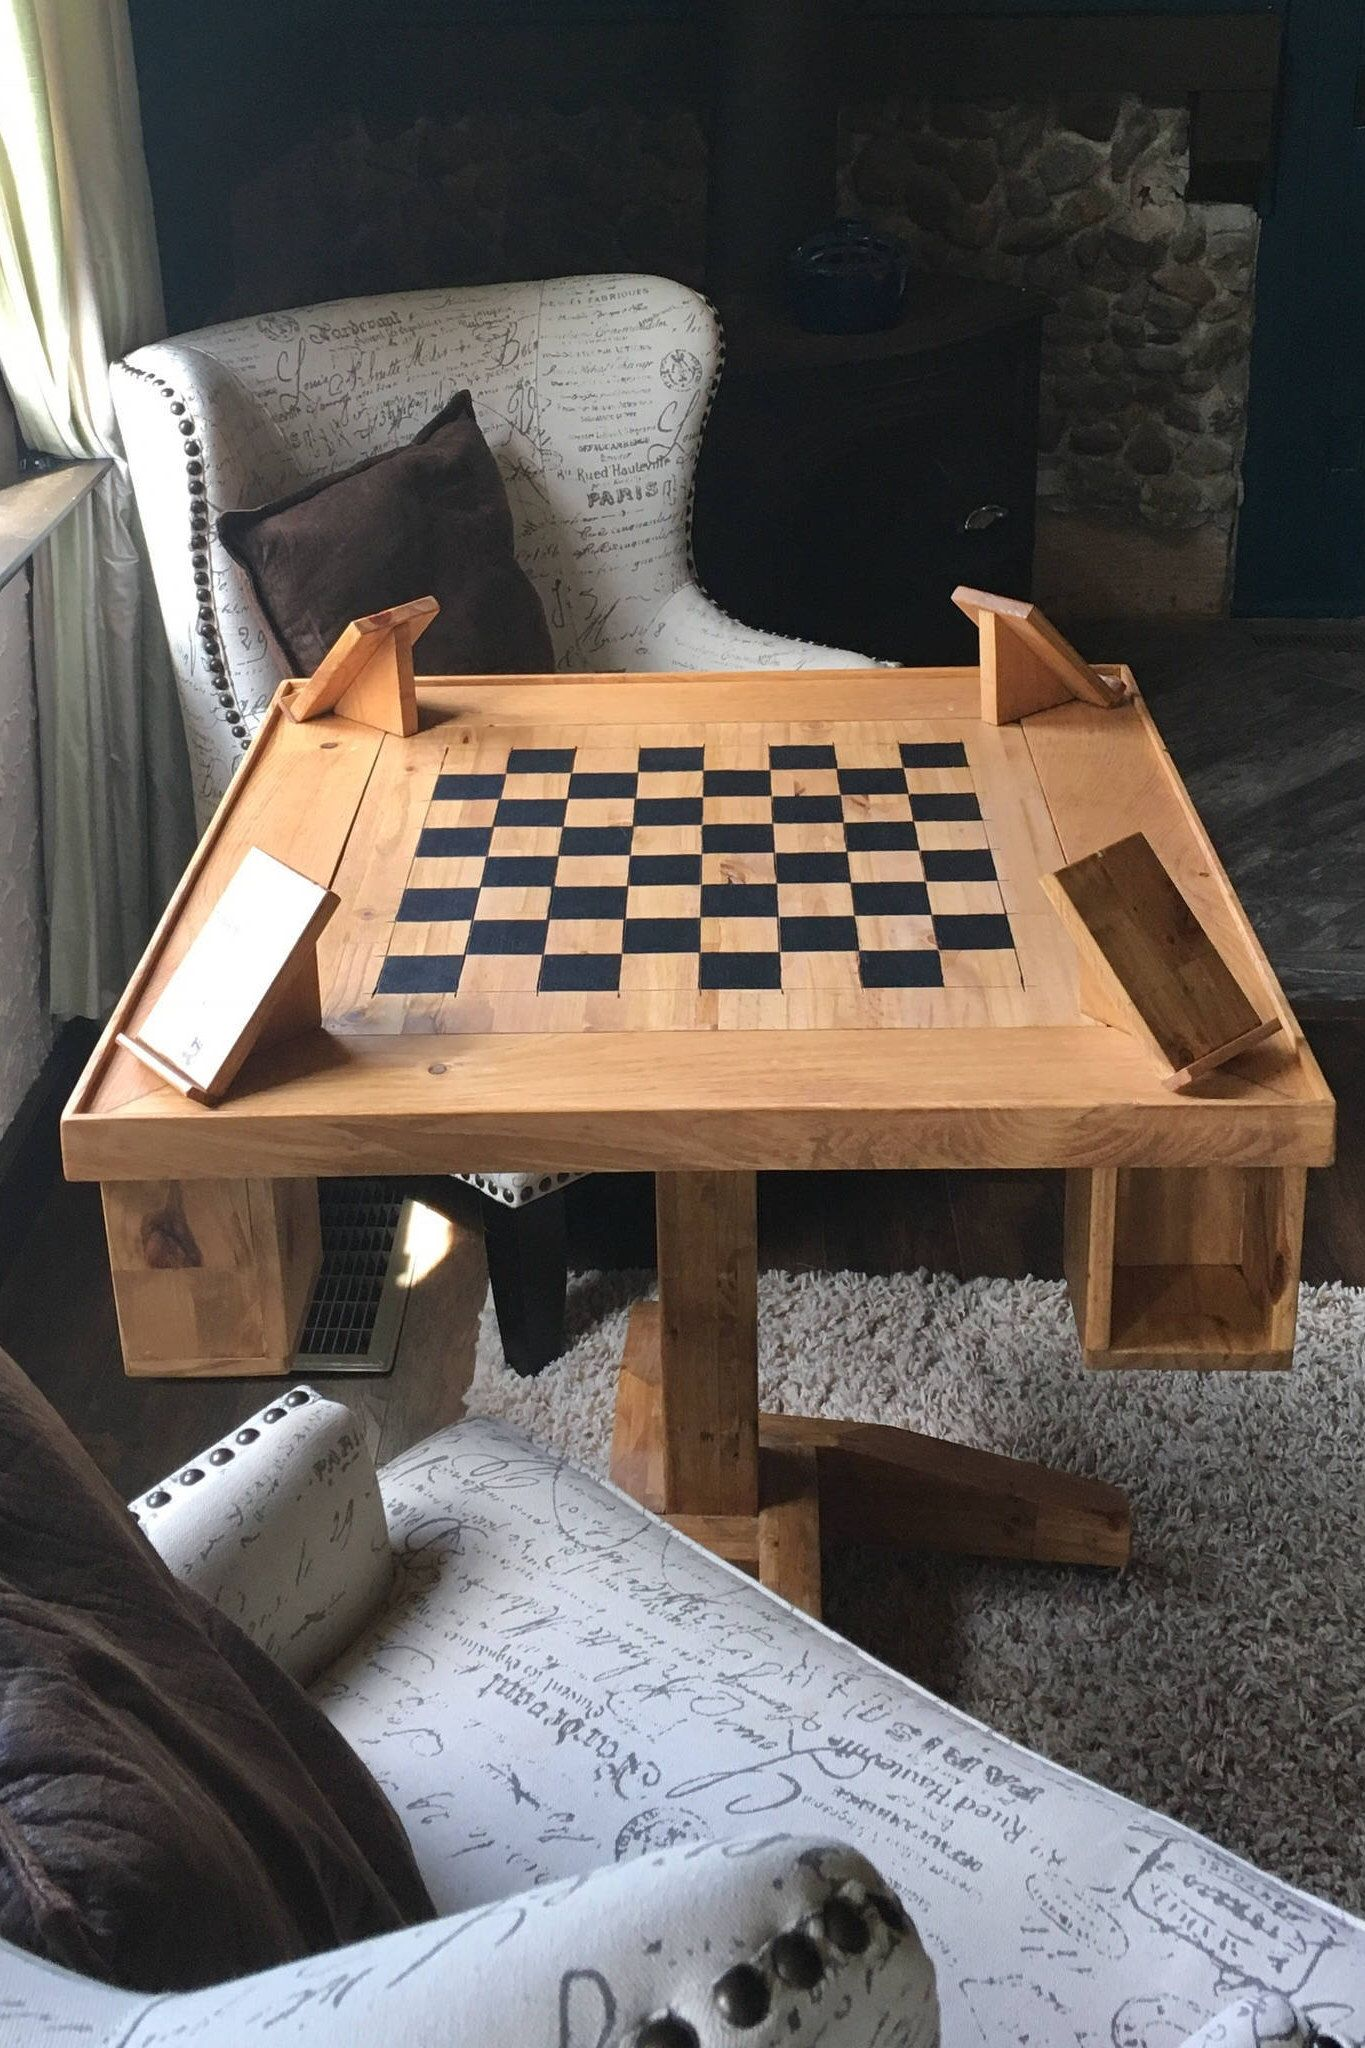 Wood Game Table Chess Board Square Table Hand Crafted Rustic Furniture Side Tabl Rustic Game Tables Modern Rustic Furniture Rustic Furniture Diy